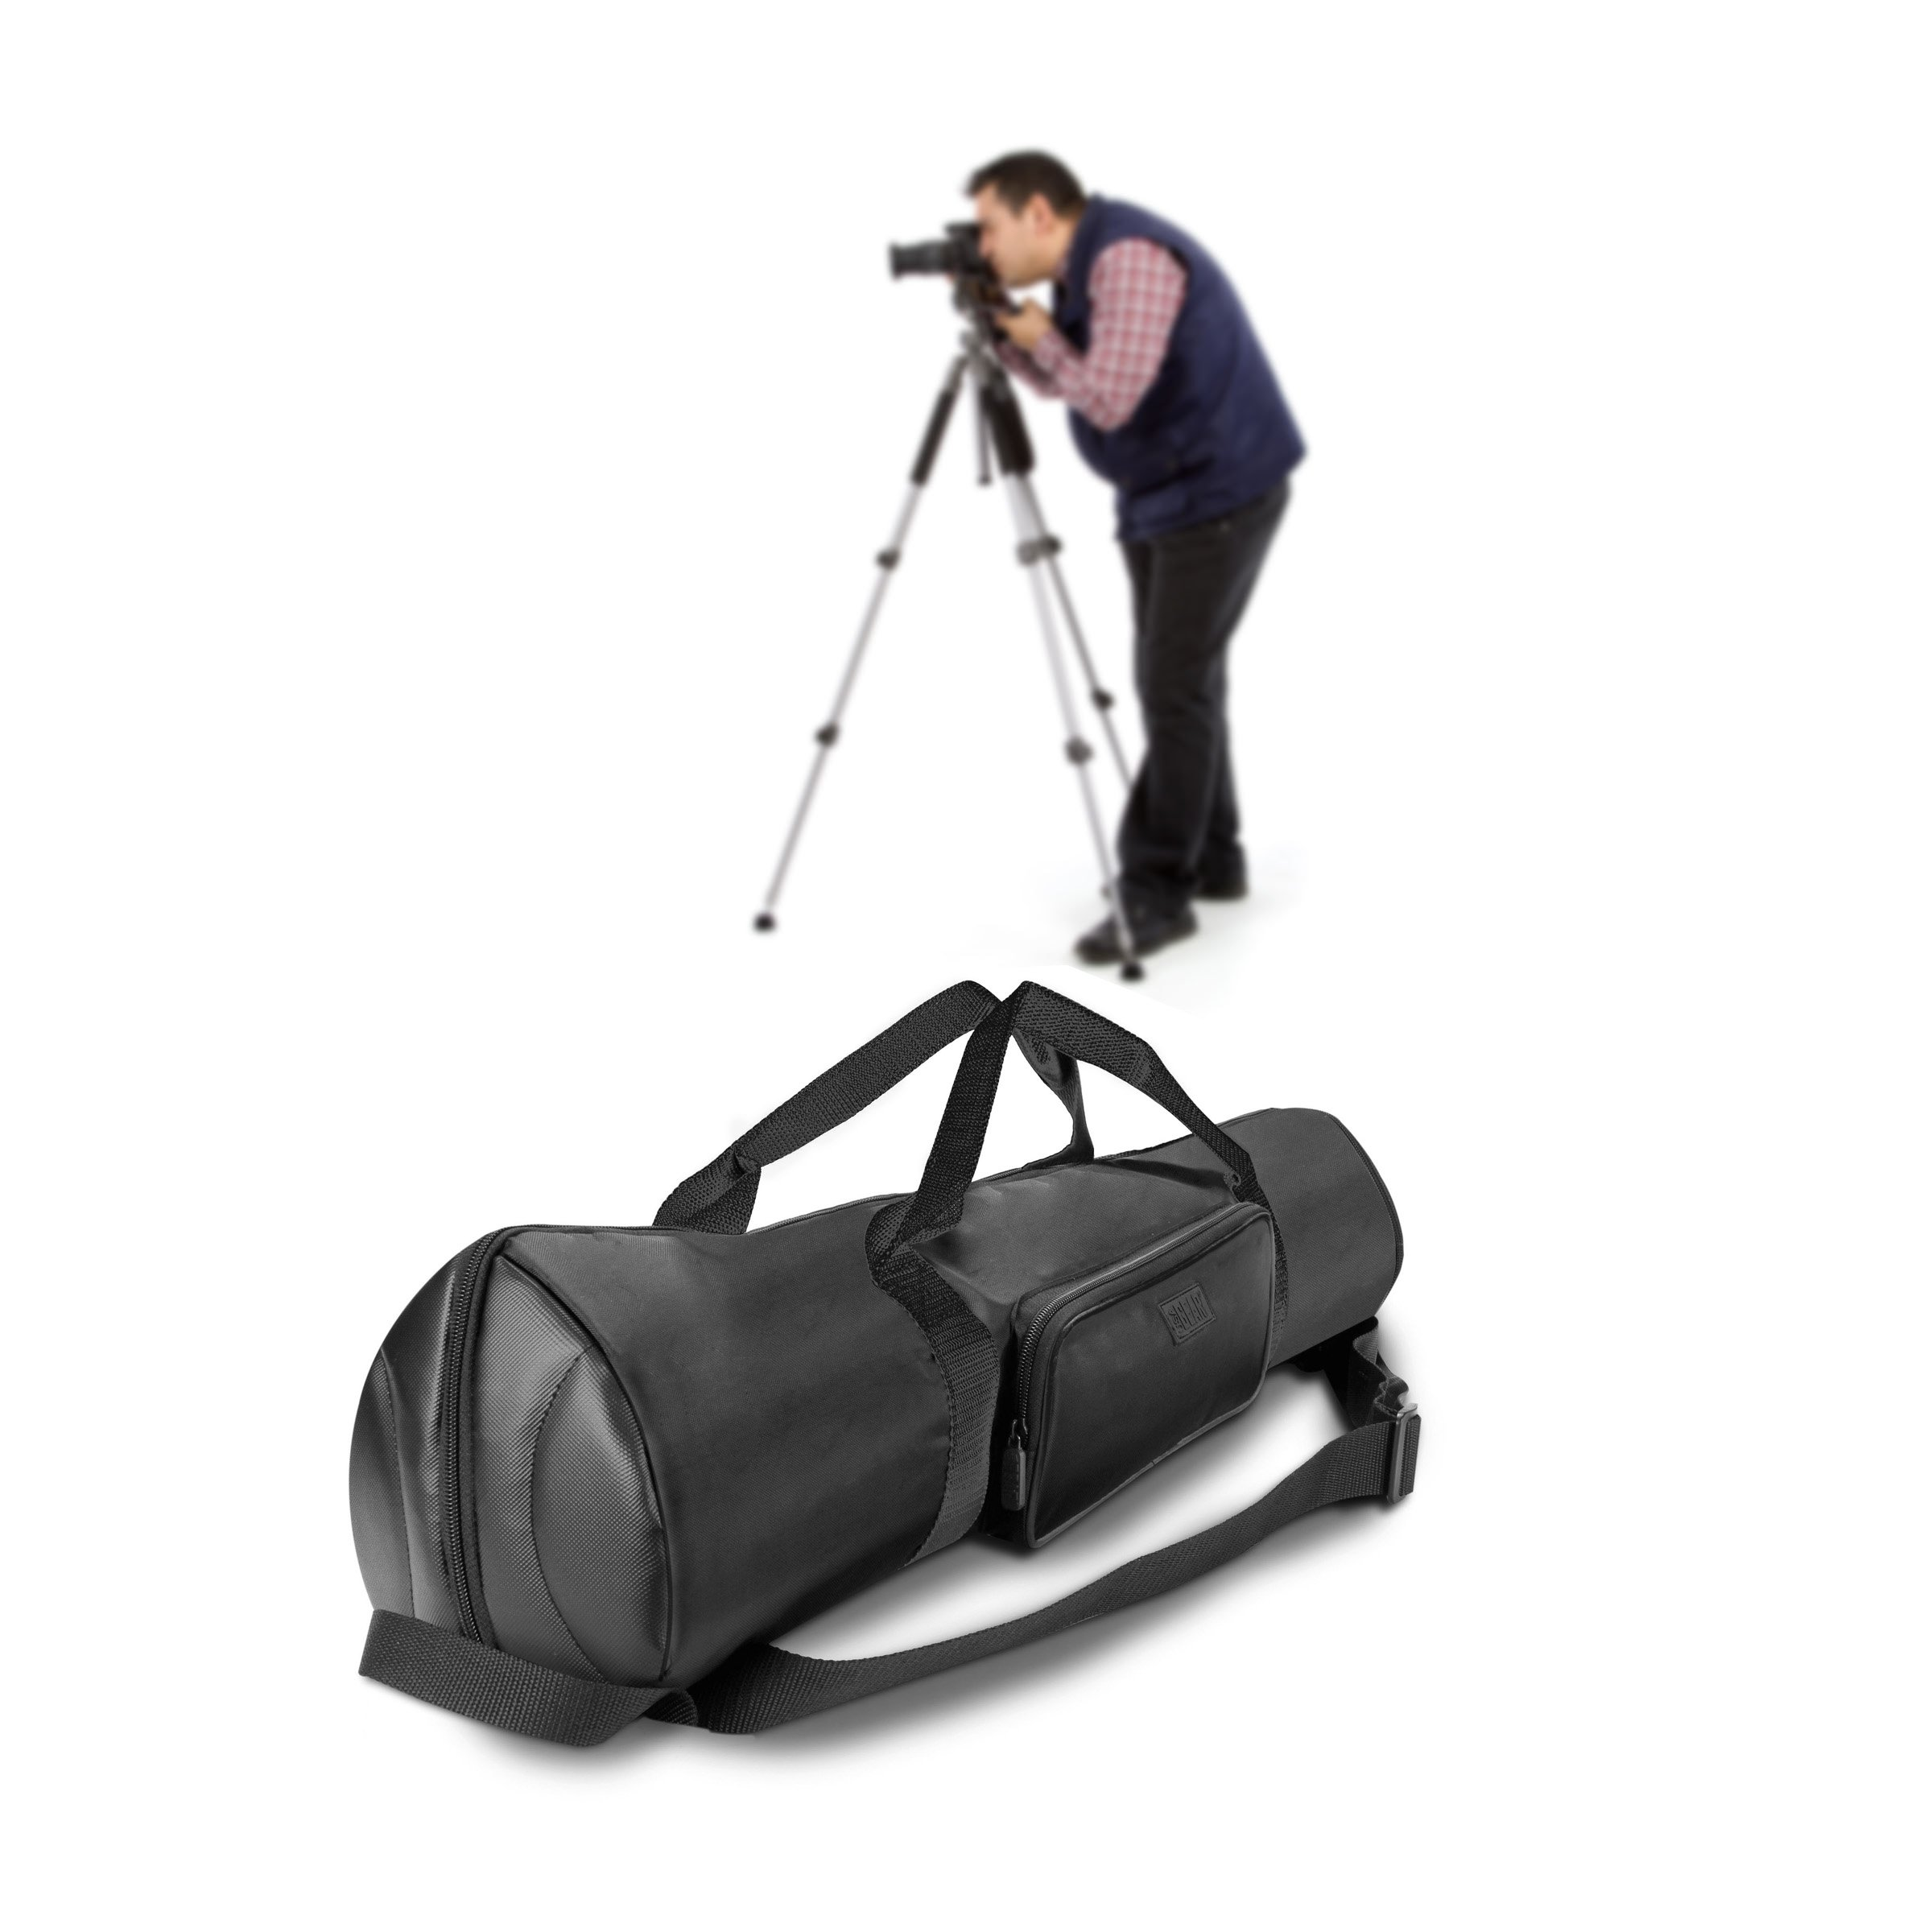 USA Gear Padded Tripod Case Bag - Holds Tripods from 21'' to 35'' Folded with Shoulder Strap, Adjustable Size Extension and Storage Pocket for Professional Camera Accessories and Photo Carrying Needs by USA Gear (Image #9)